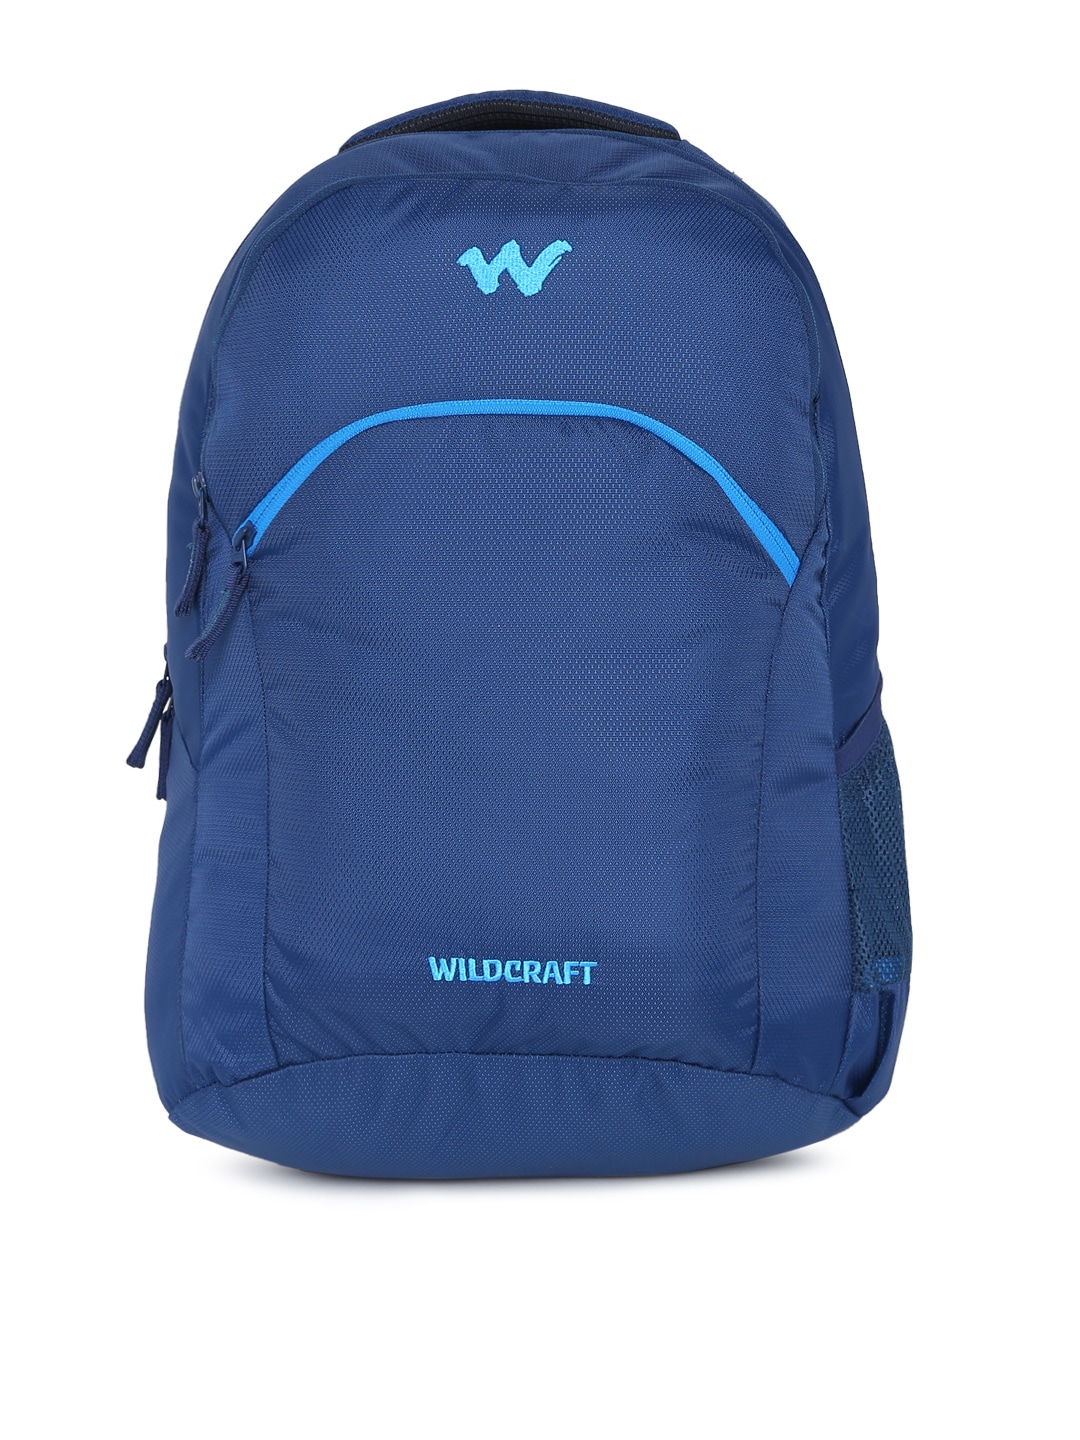 Wildcraft Backpacks Tops - Buy Wildcraft Backpacks Tops online in India b778bda8b6602